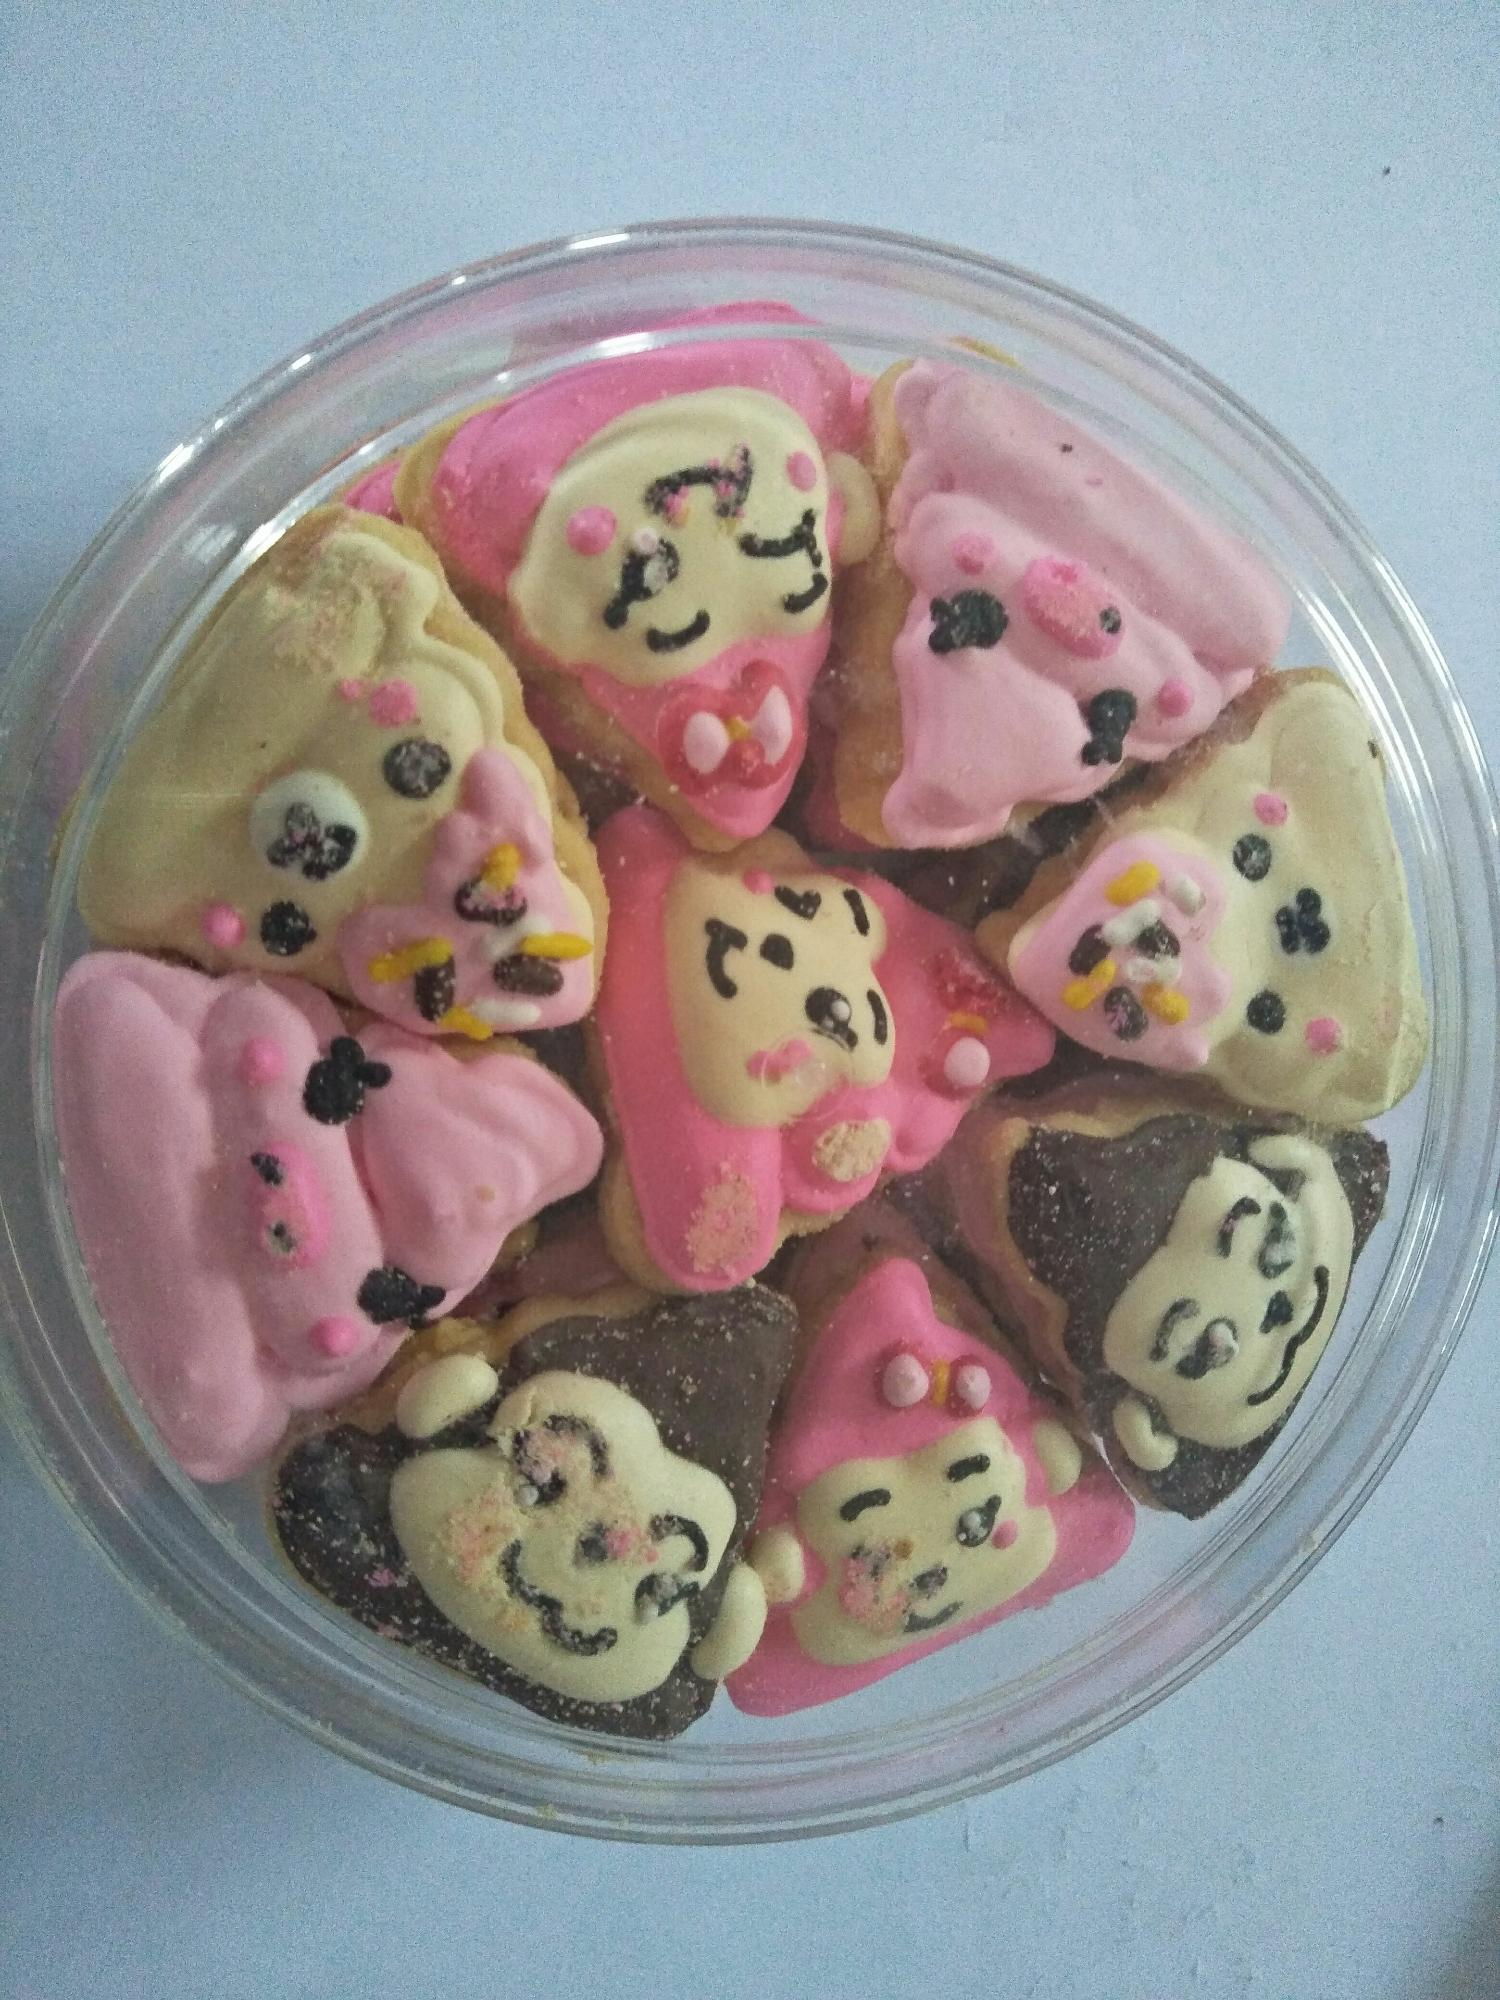 Rp 12.000. Cookies squishy monkeyIDR12000. Rp 35.000